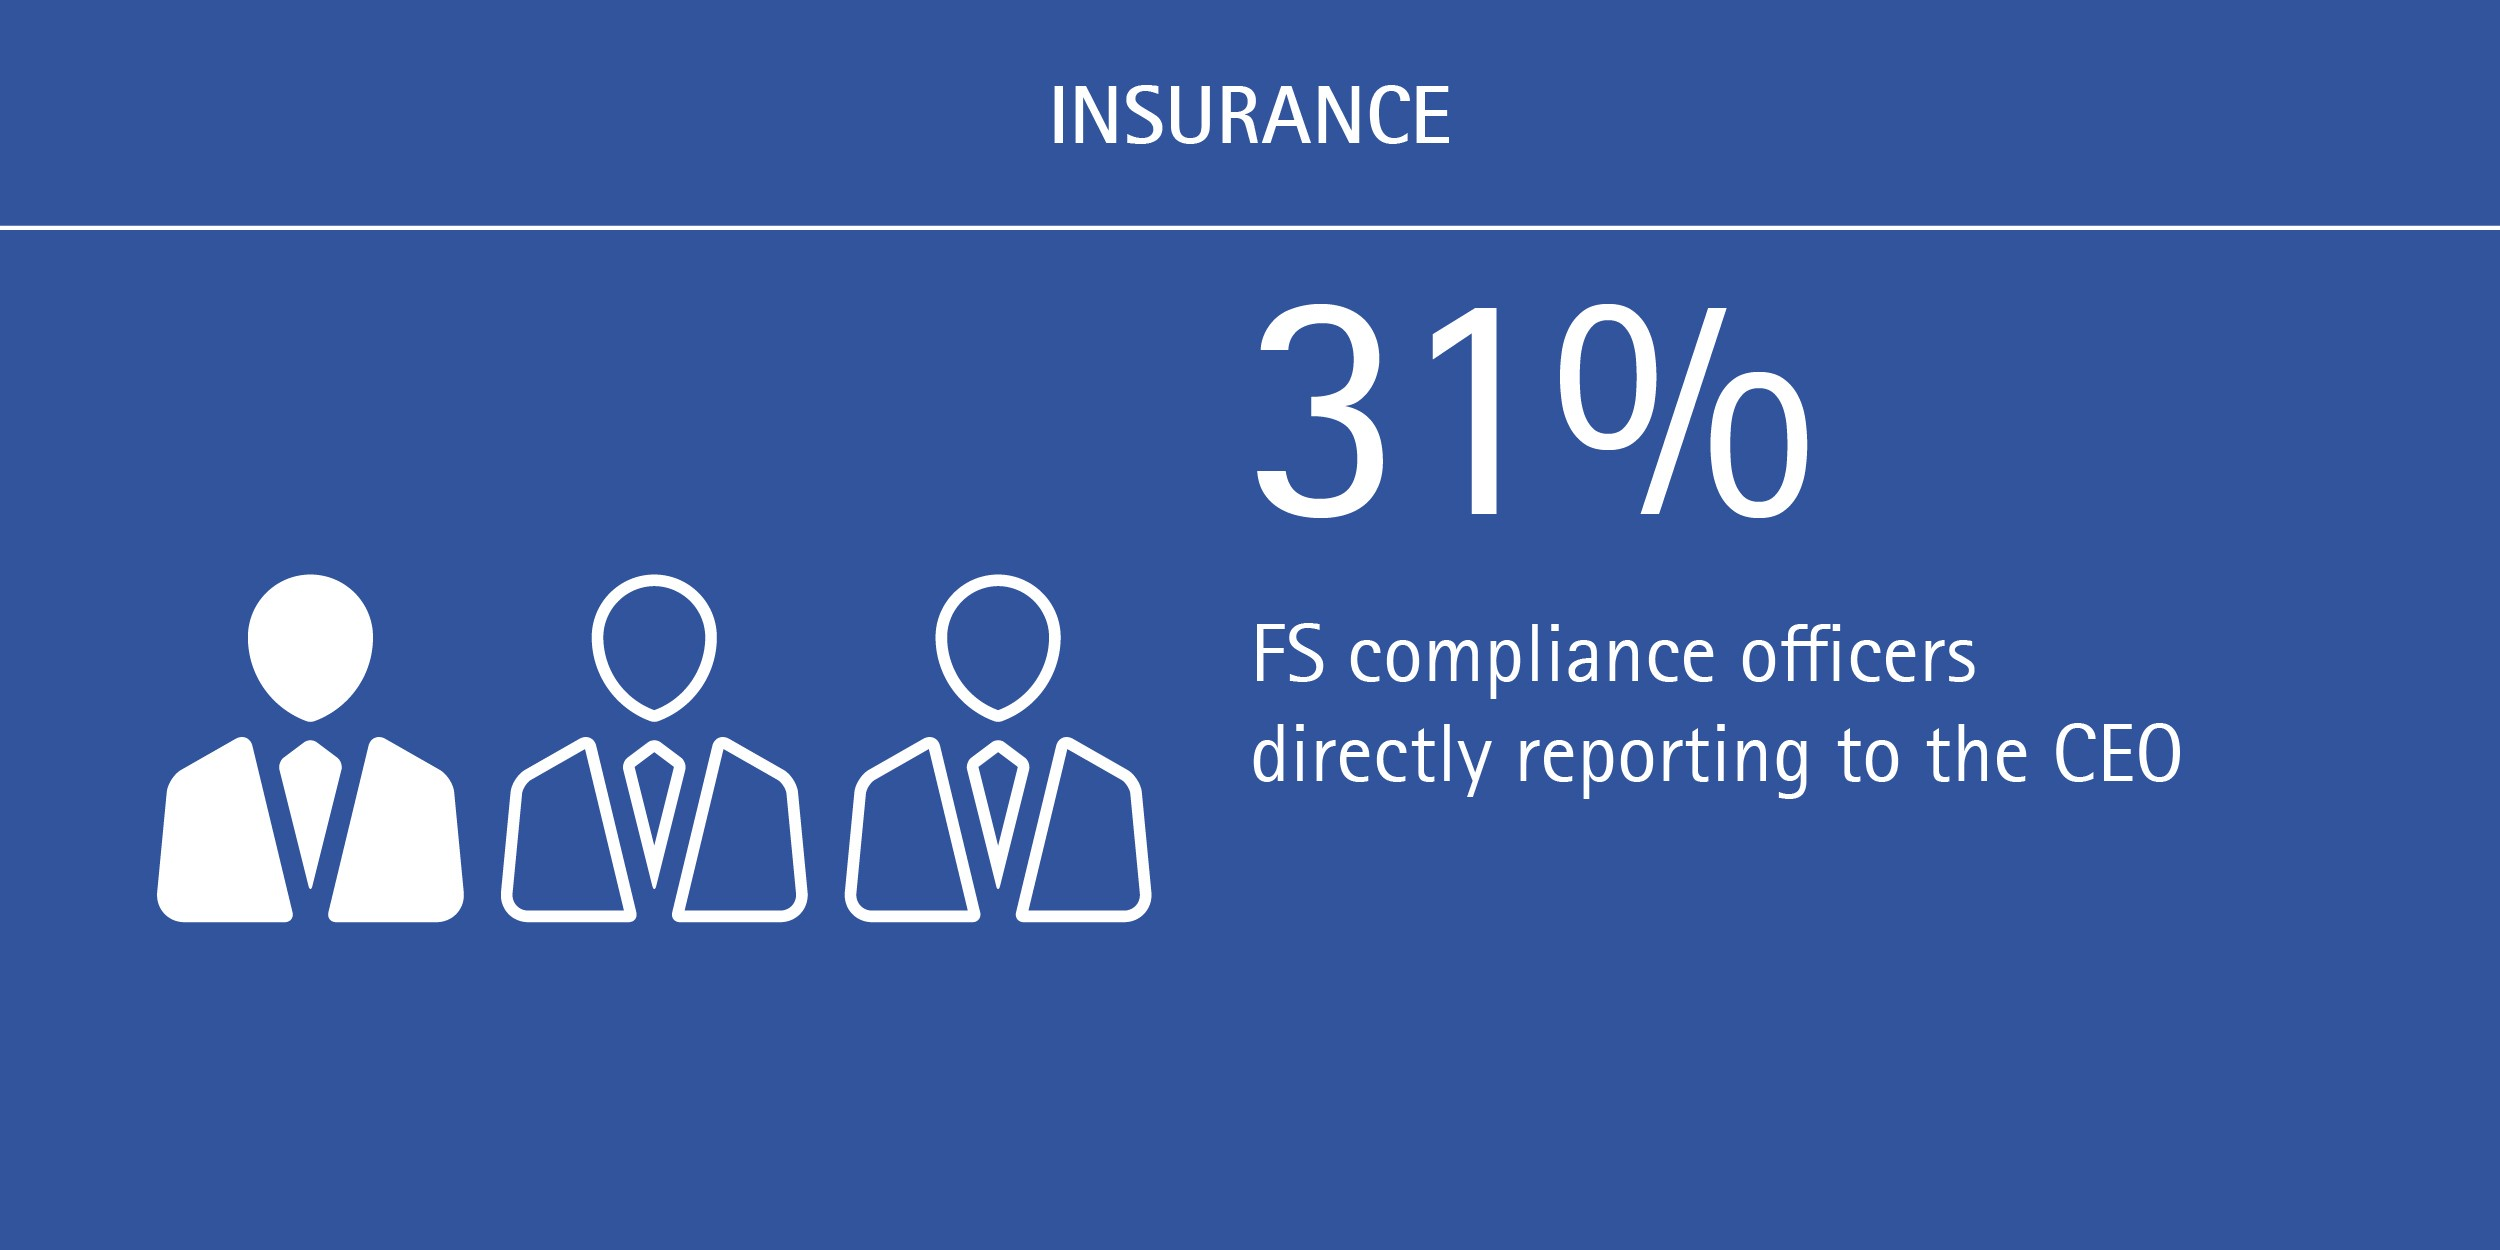 Shifts underway in FS compliance reporting lines: 31% of FS compliance officers are directly reporting to the CEO